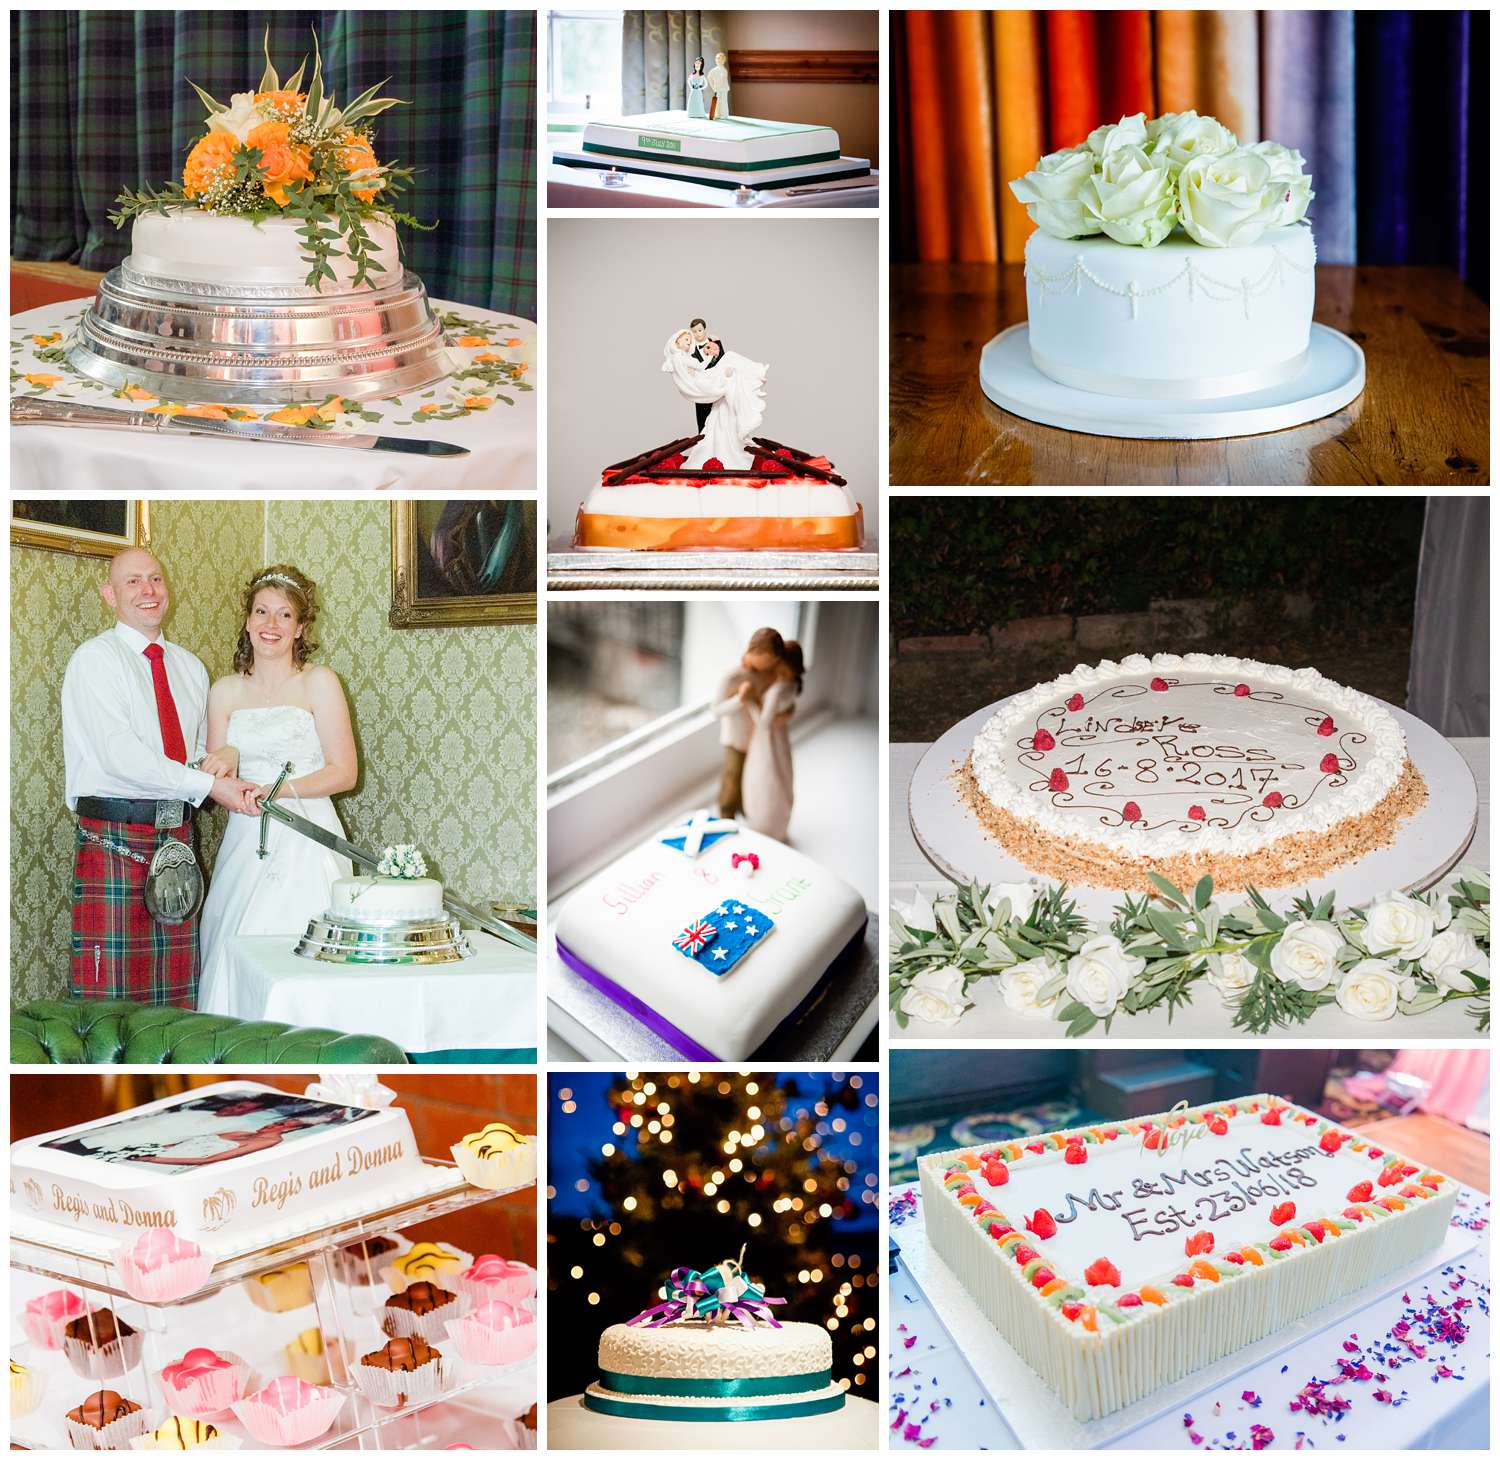 One-tier wedding cake ideas, ideas for your wedding cake